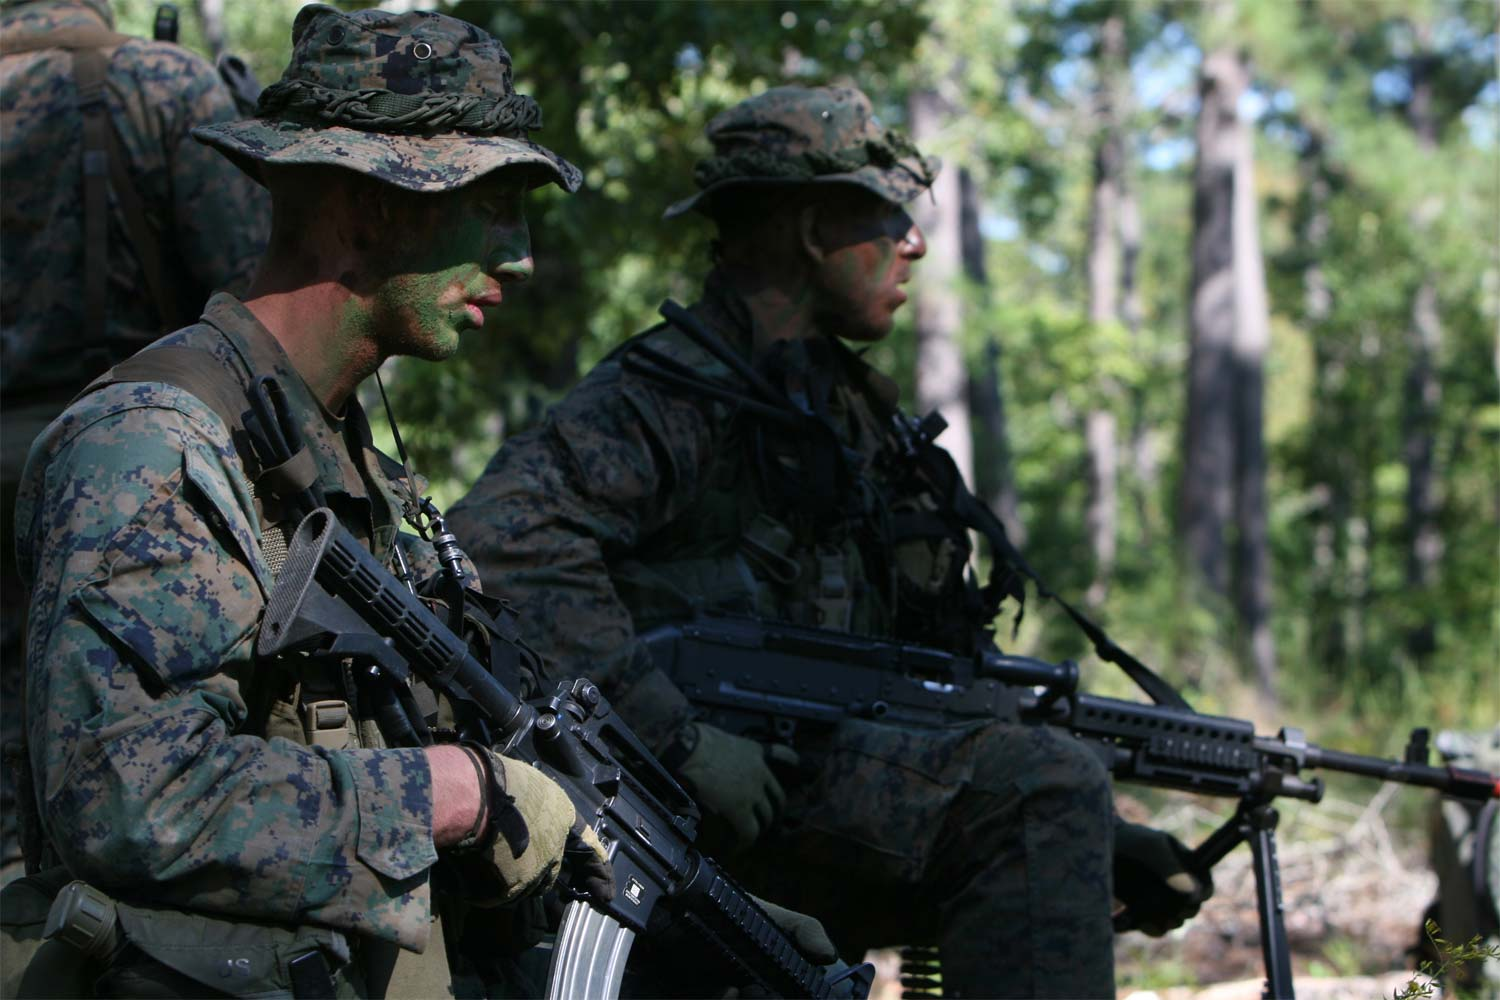 Special Forces • U.S. Marines • What it takes to be a Reconnaissance Marine